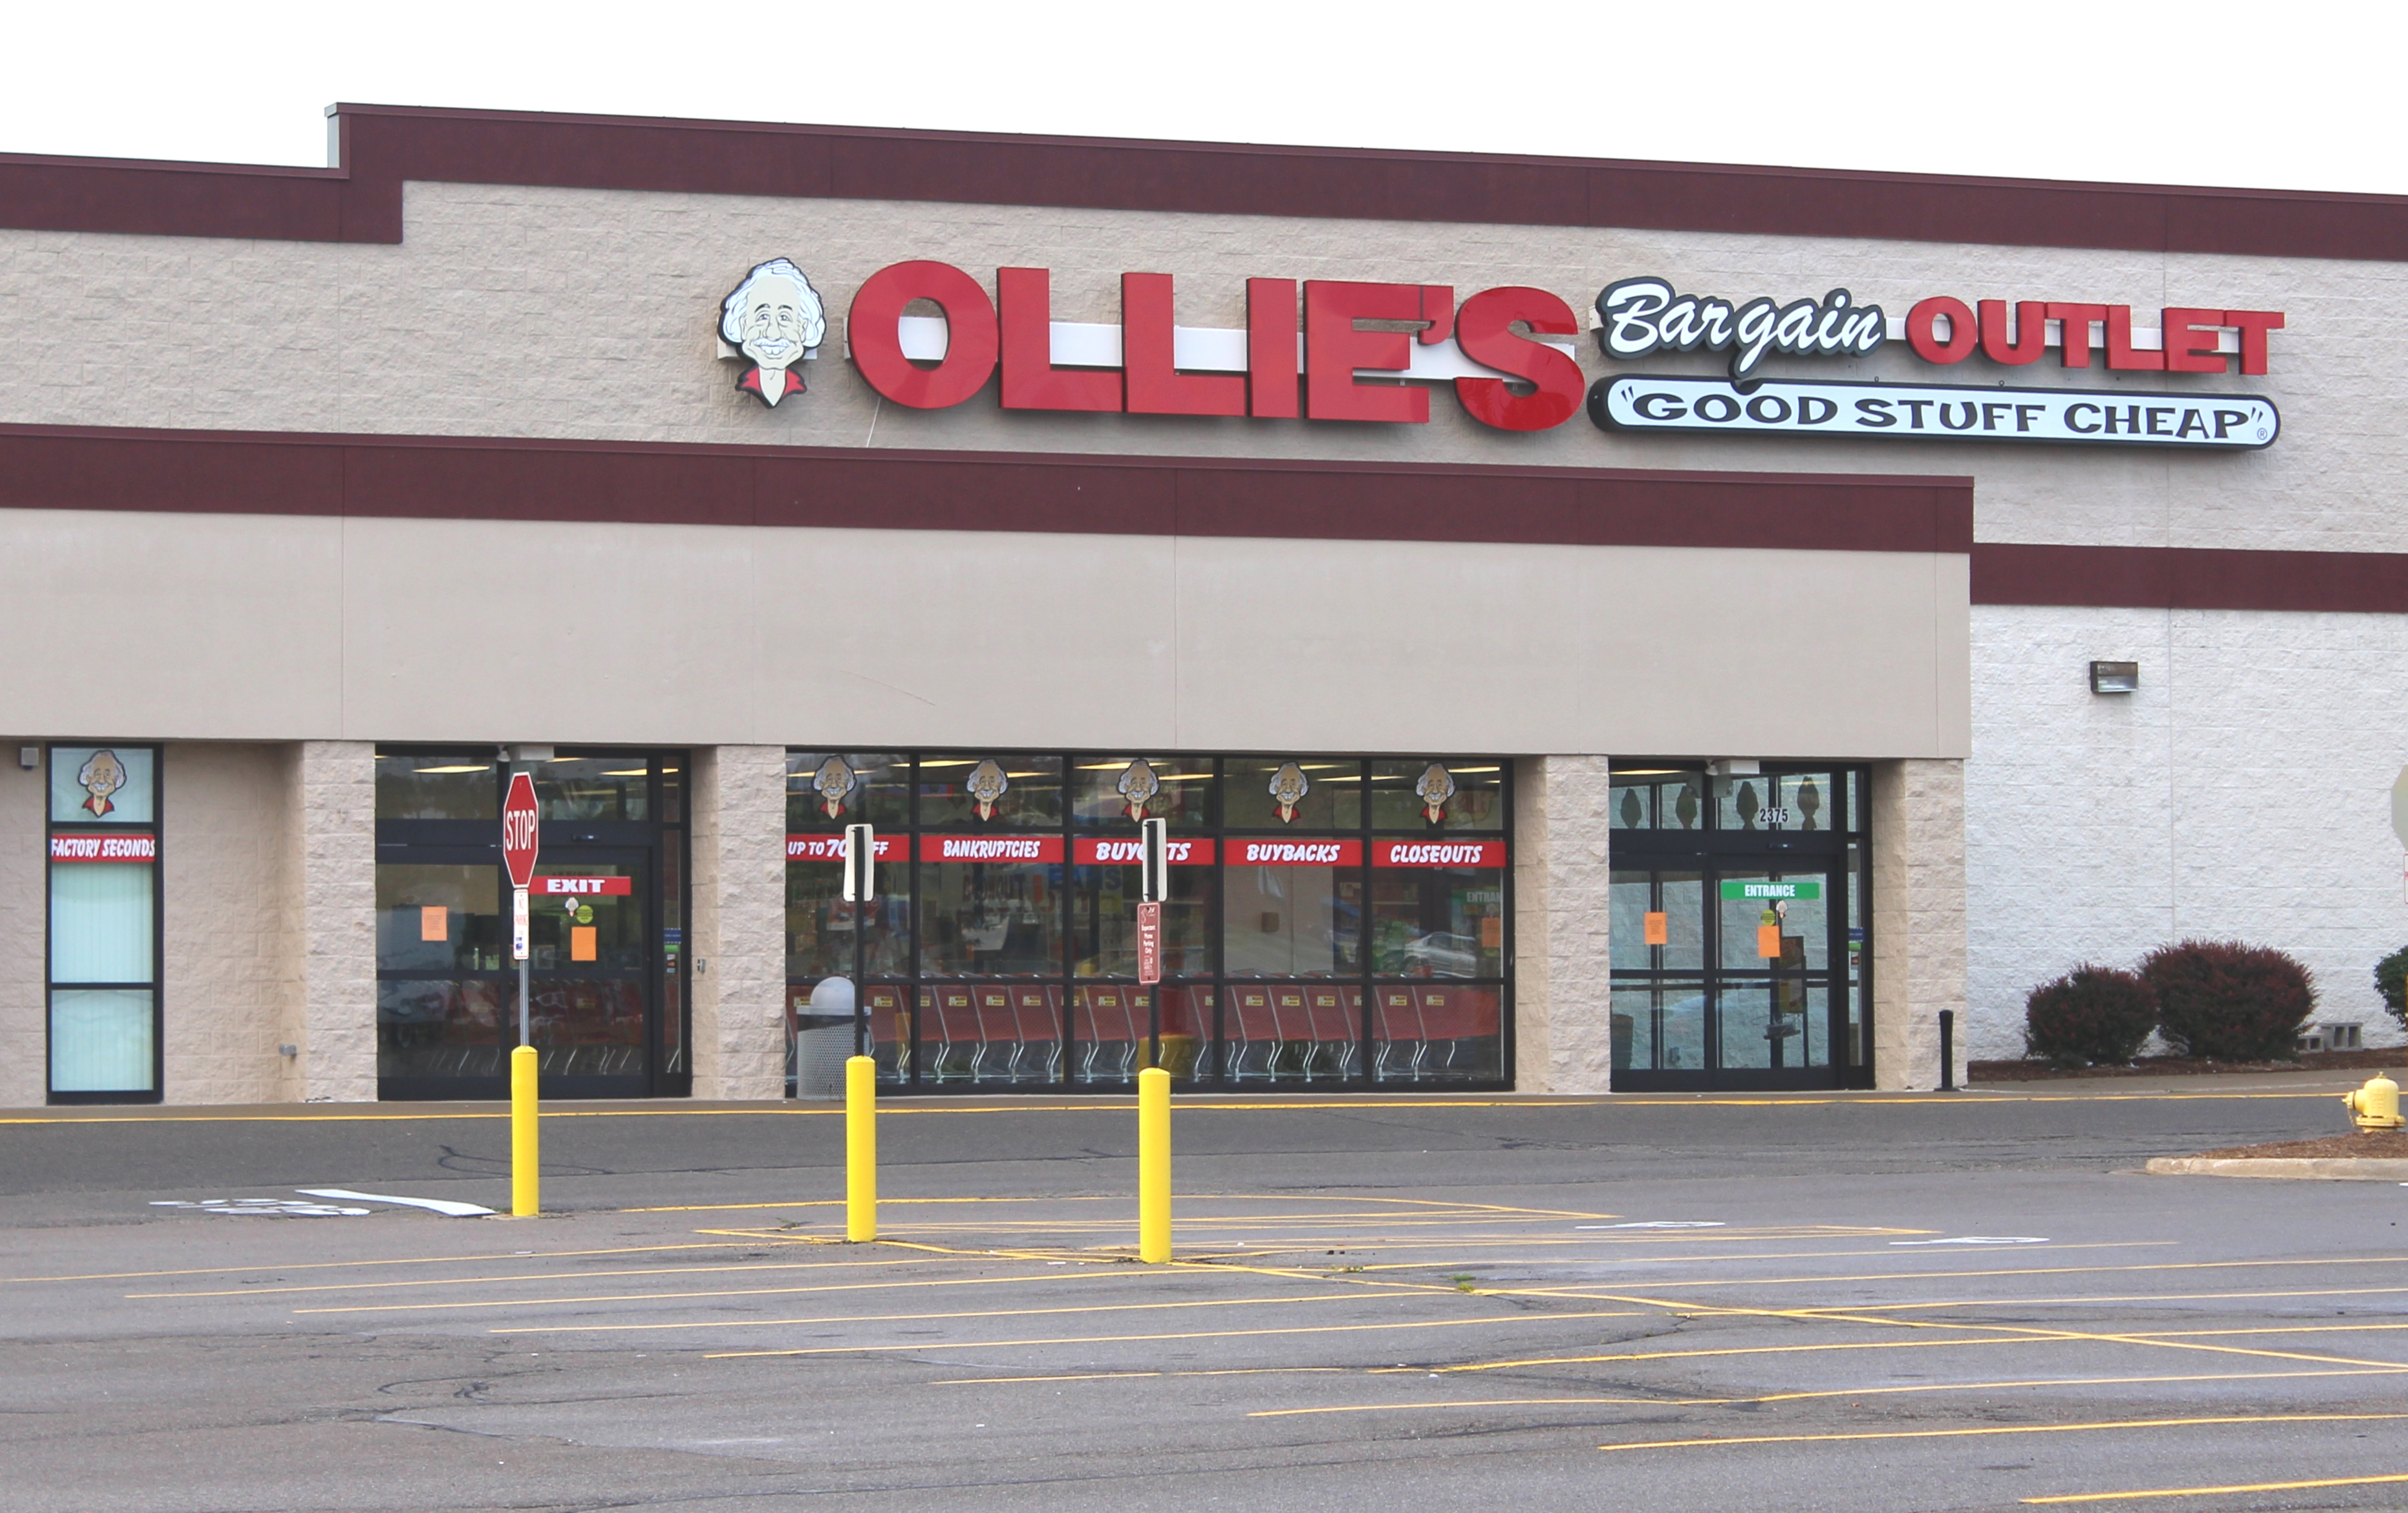 image about Ollies Coupons Printable referred to as Ollies Deal Outlet - Wikipedia